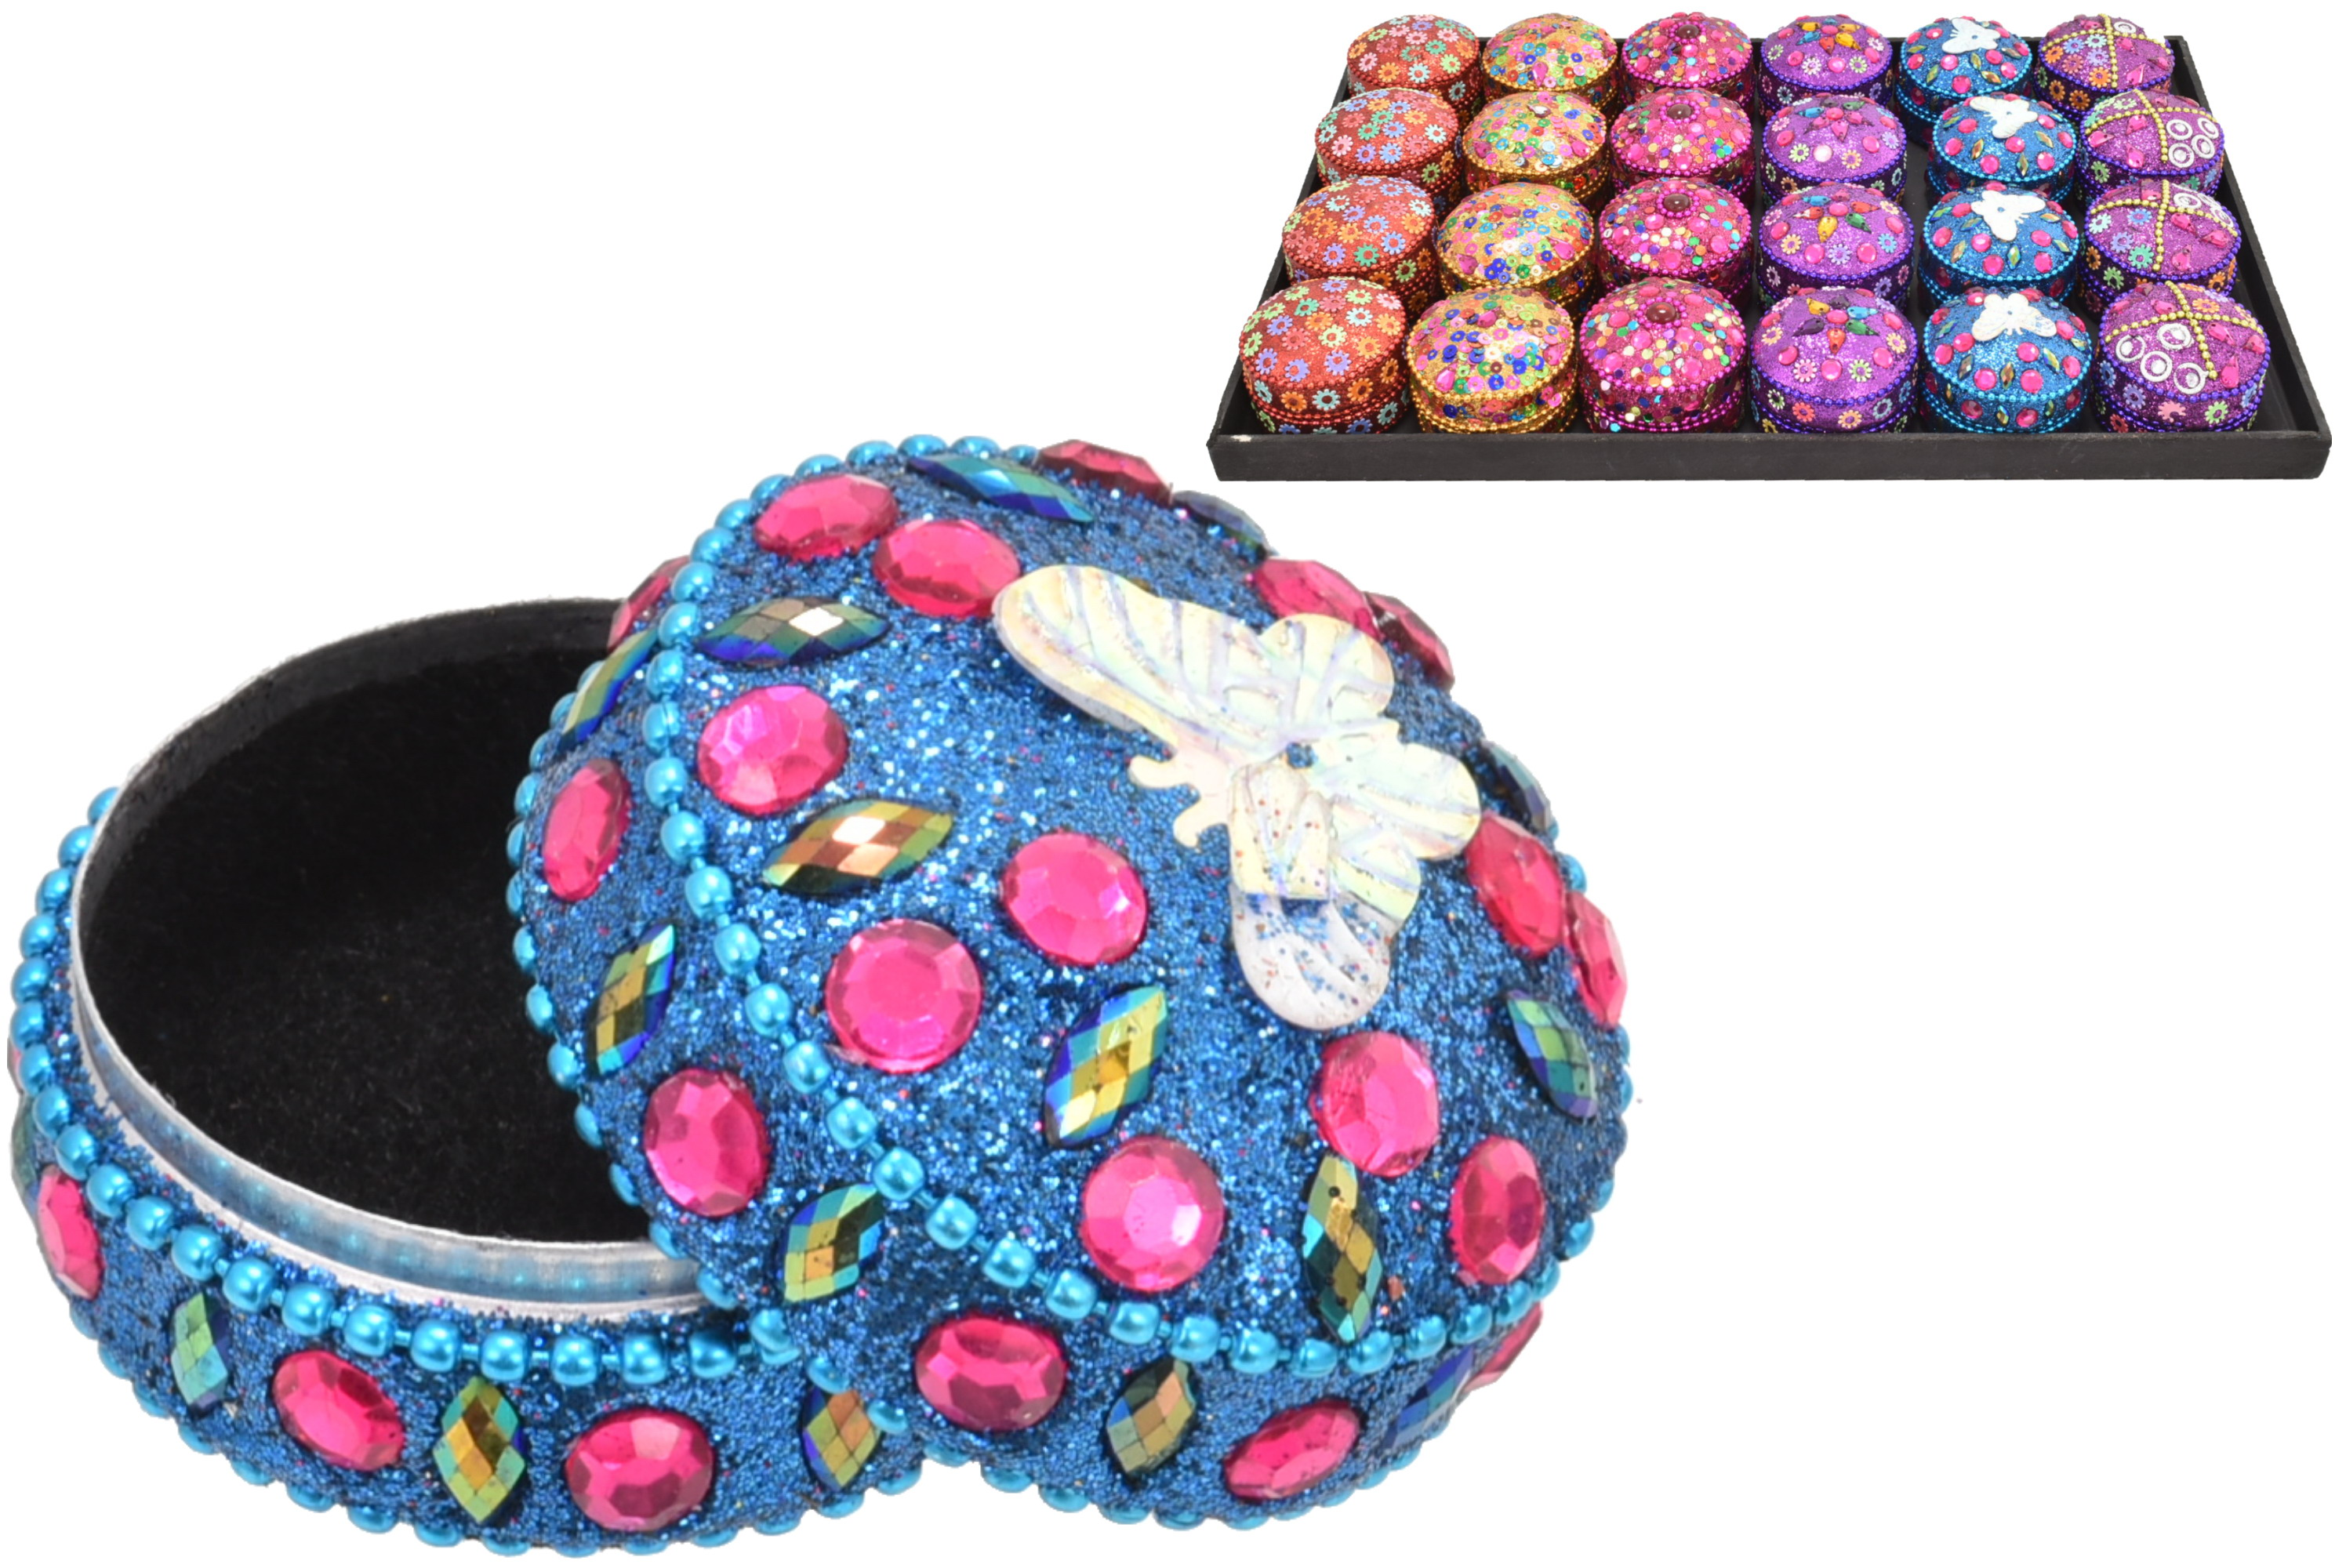 5cm Round Sequin Trinket Box In Display Tray